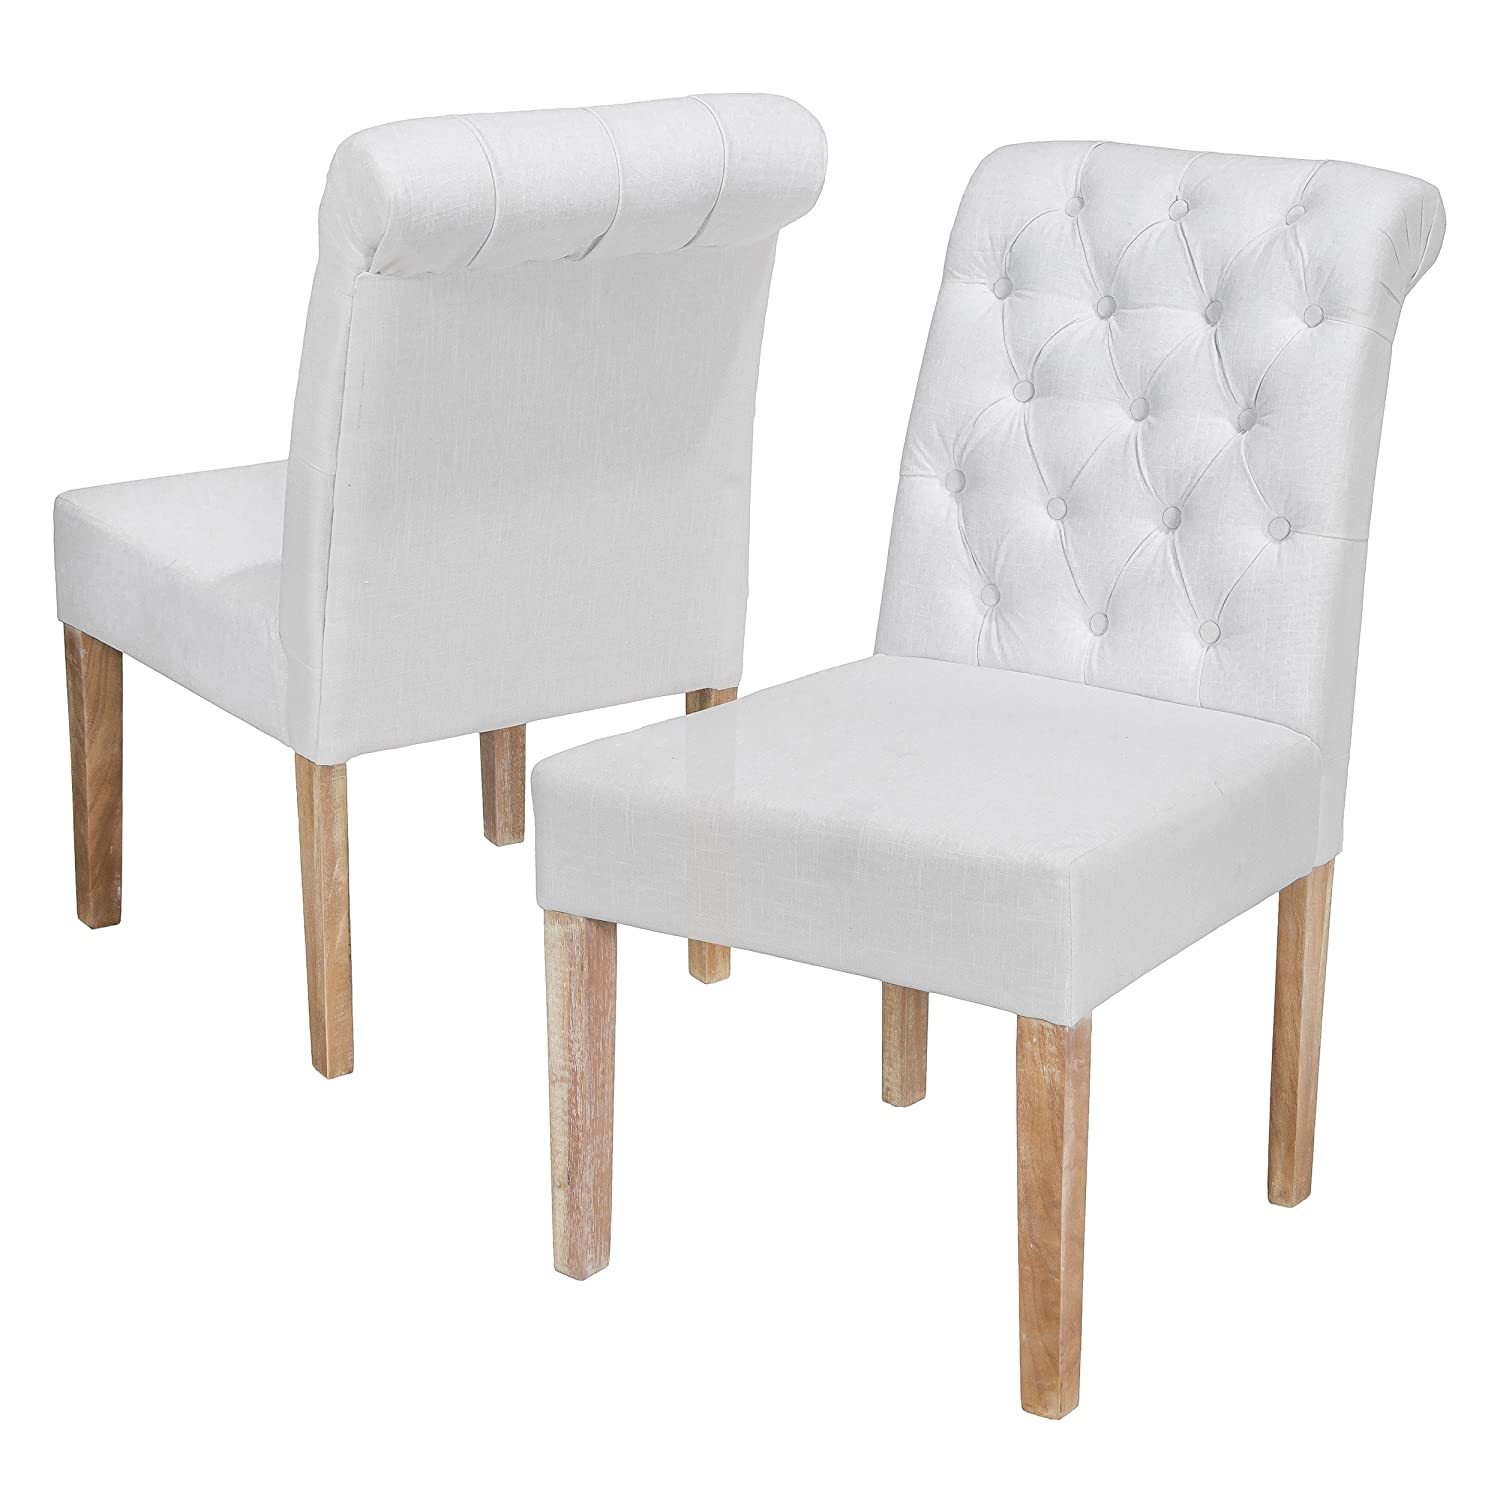 Amazon.com - Best-selling Darla Tufted White Fabric Dining ...